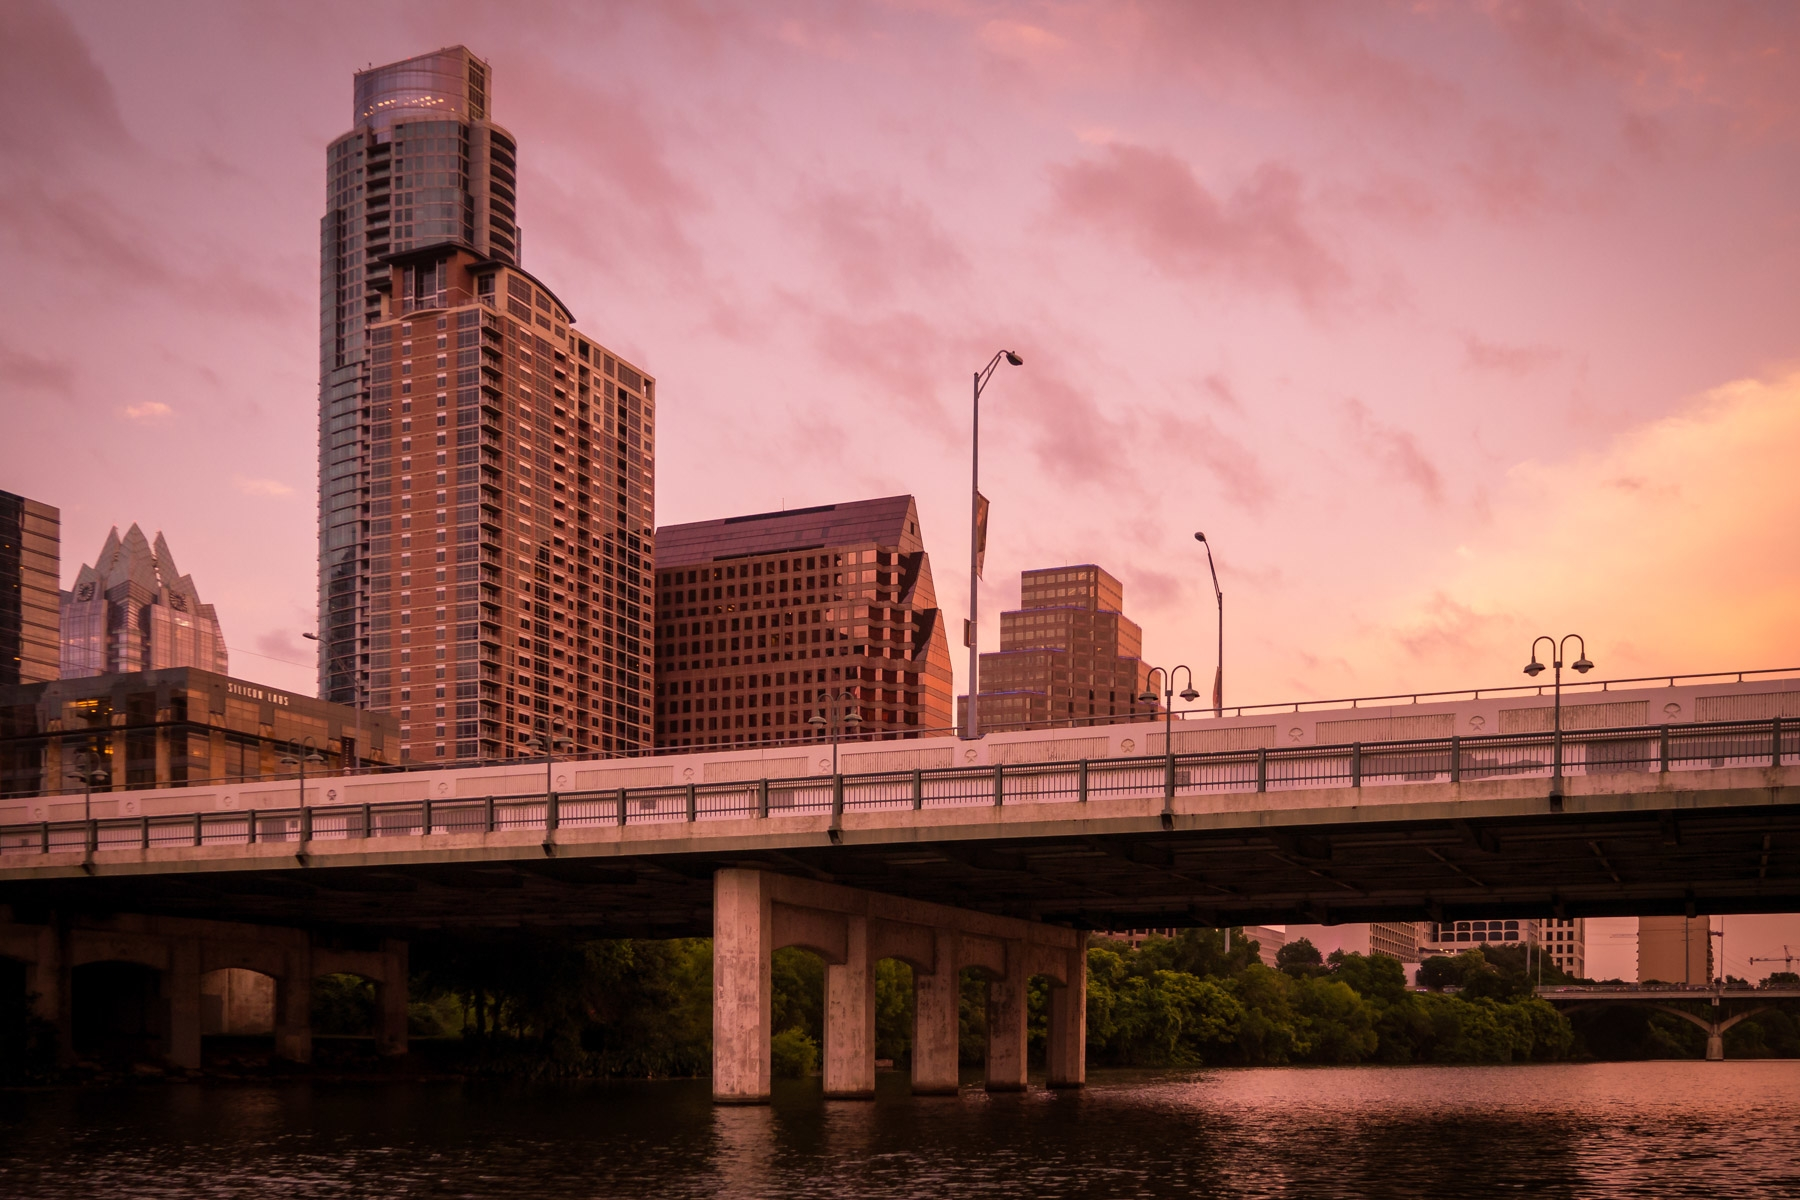 austin lady bird lake sunset.jpg